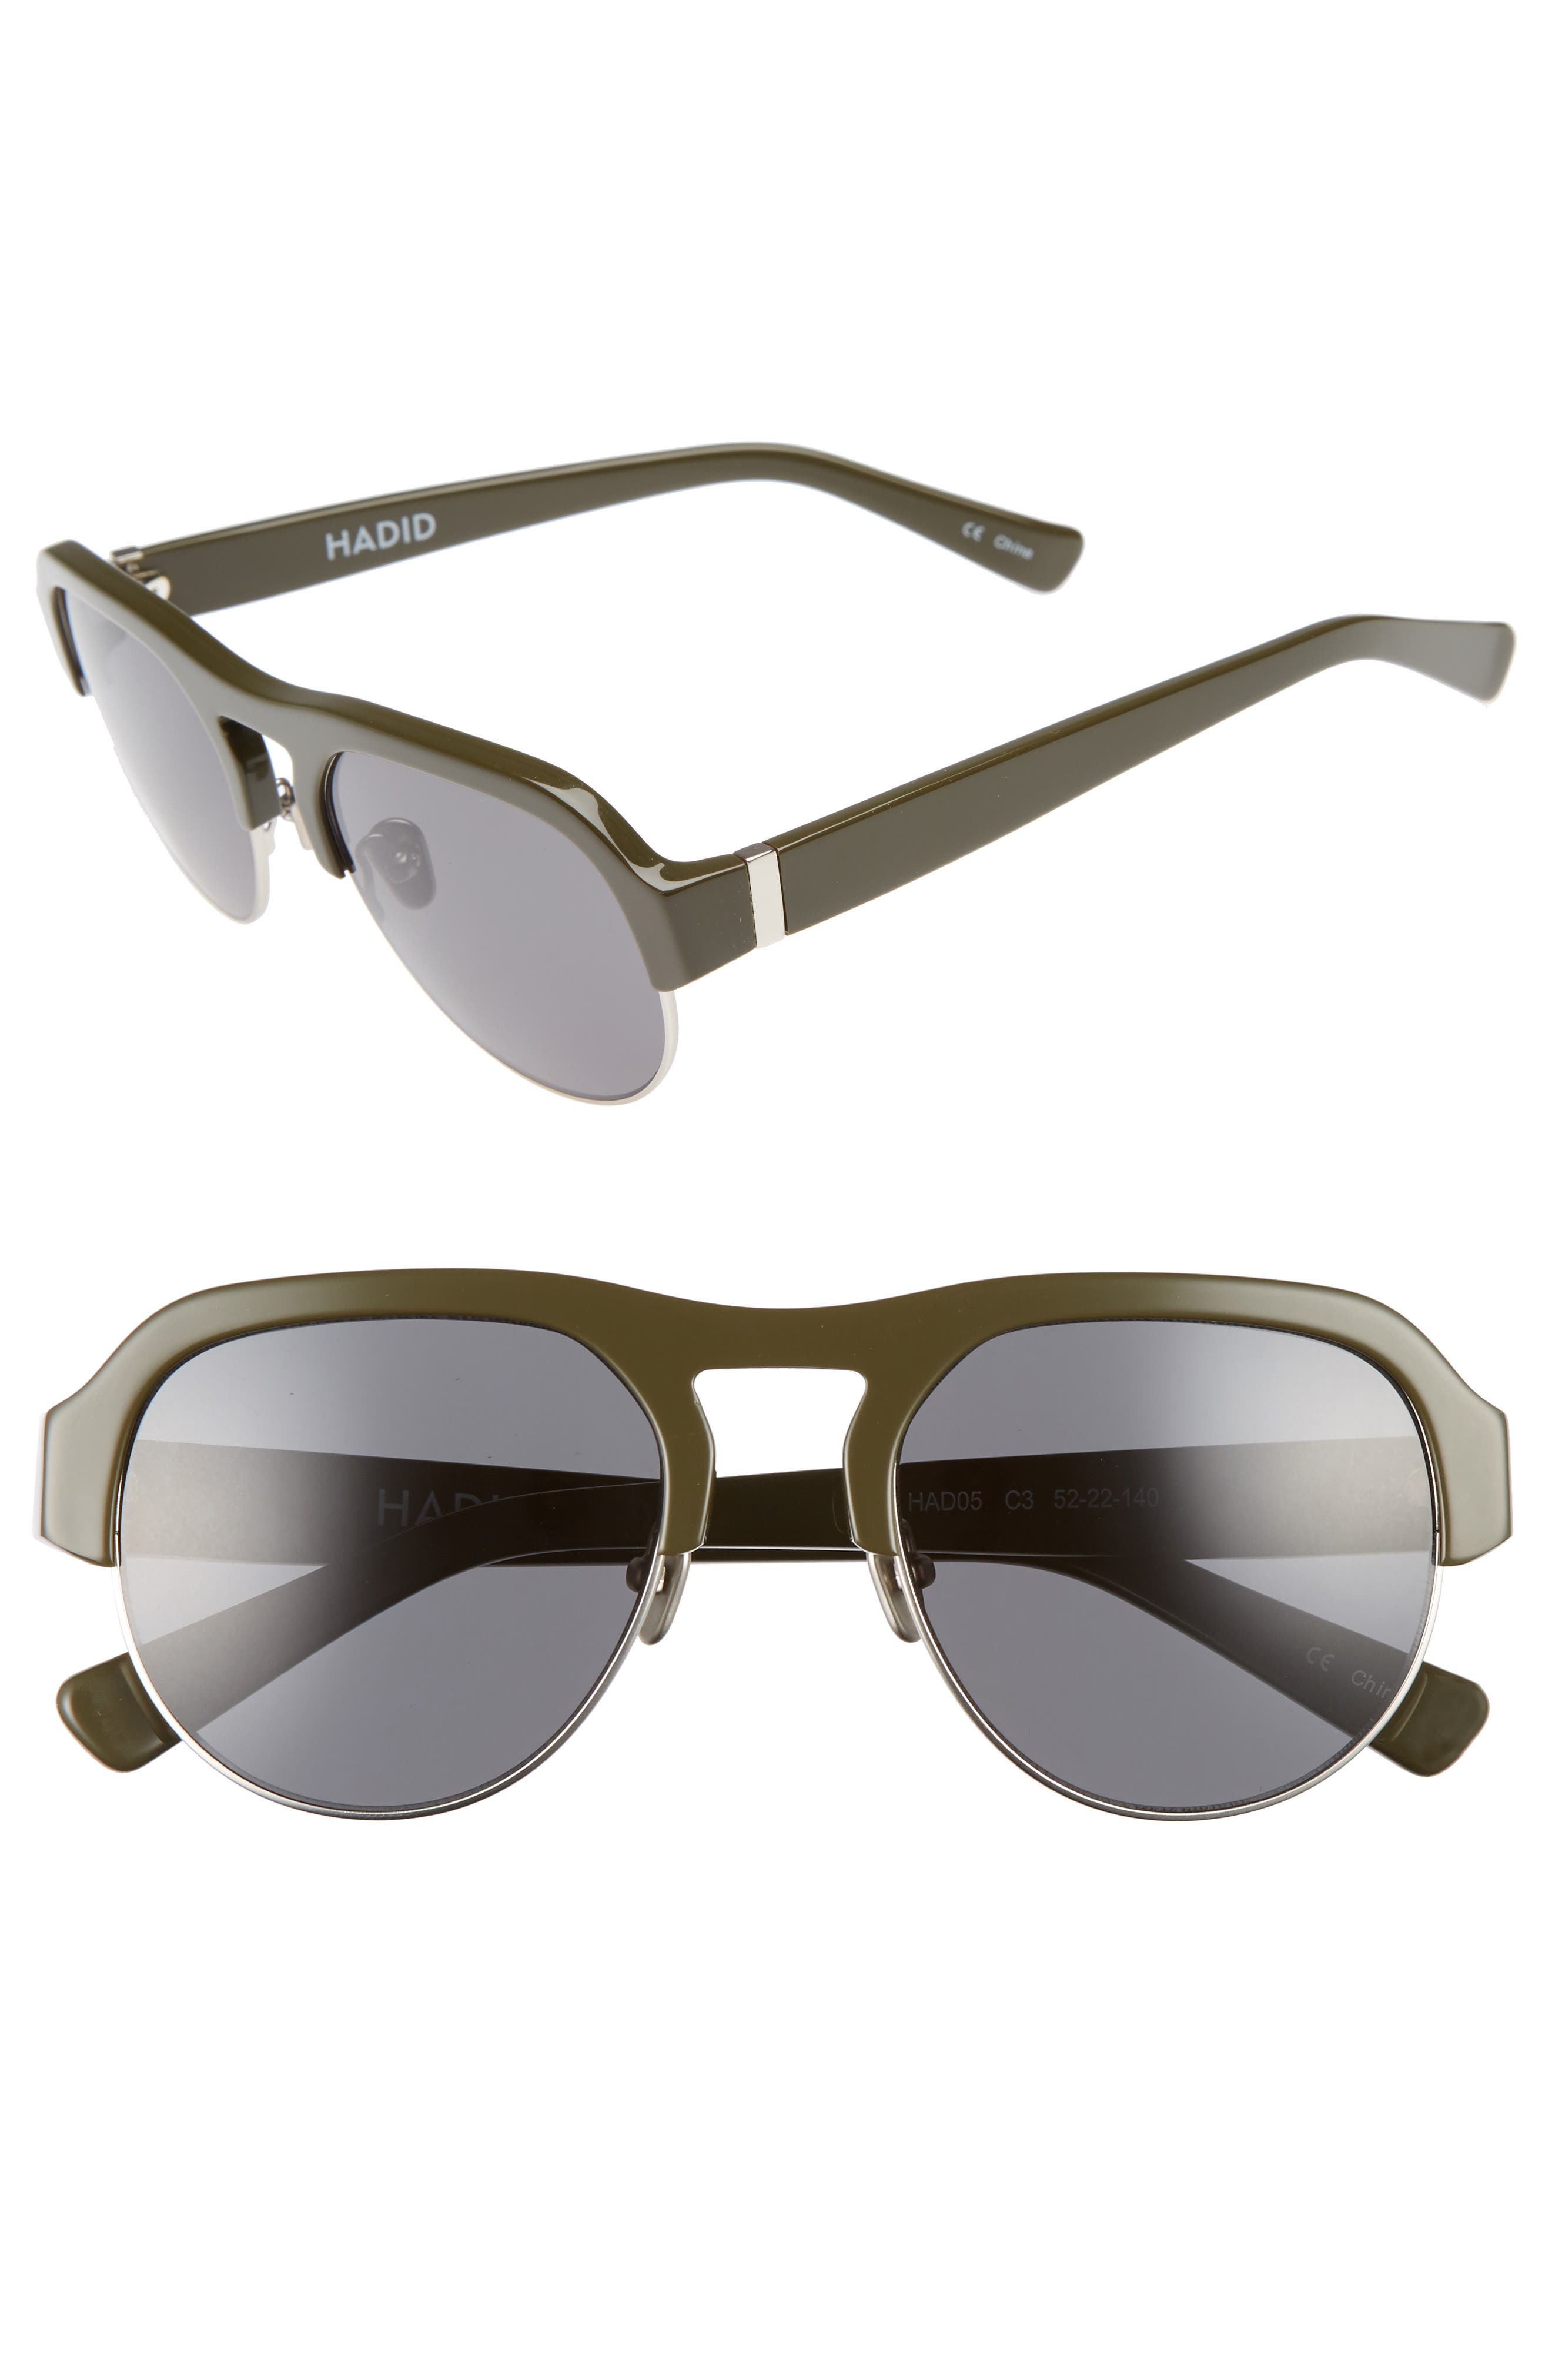 Nomad 52mm Sunglasses,                             Main thumbnail 1, color,                             OLIVE/ SILVER